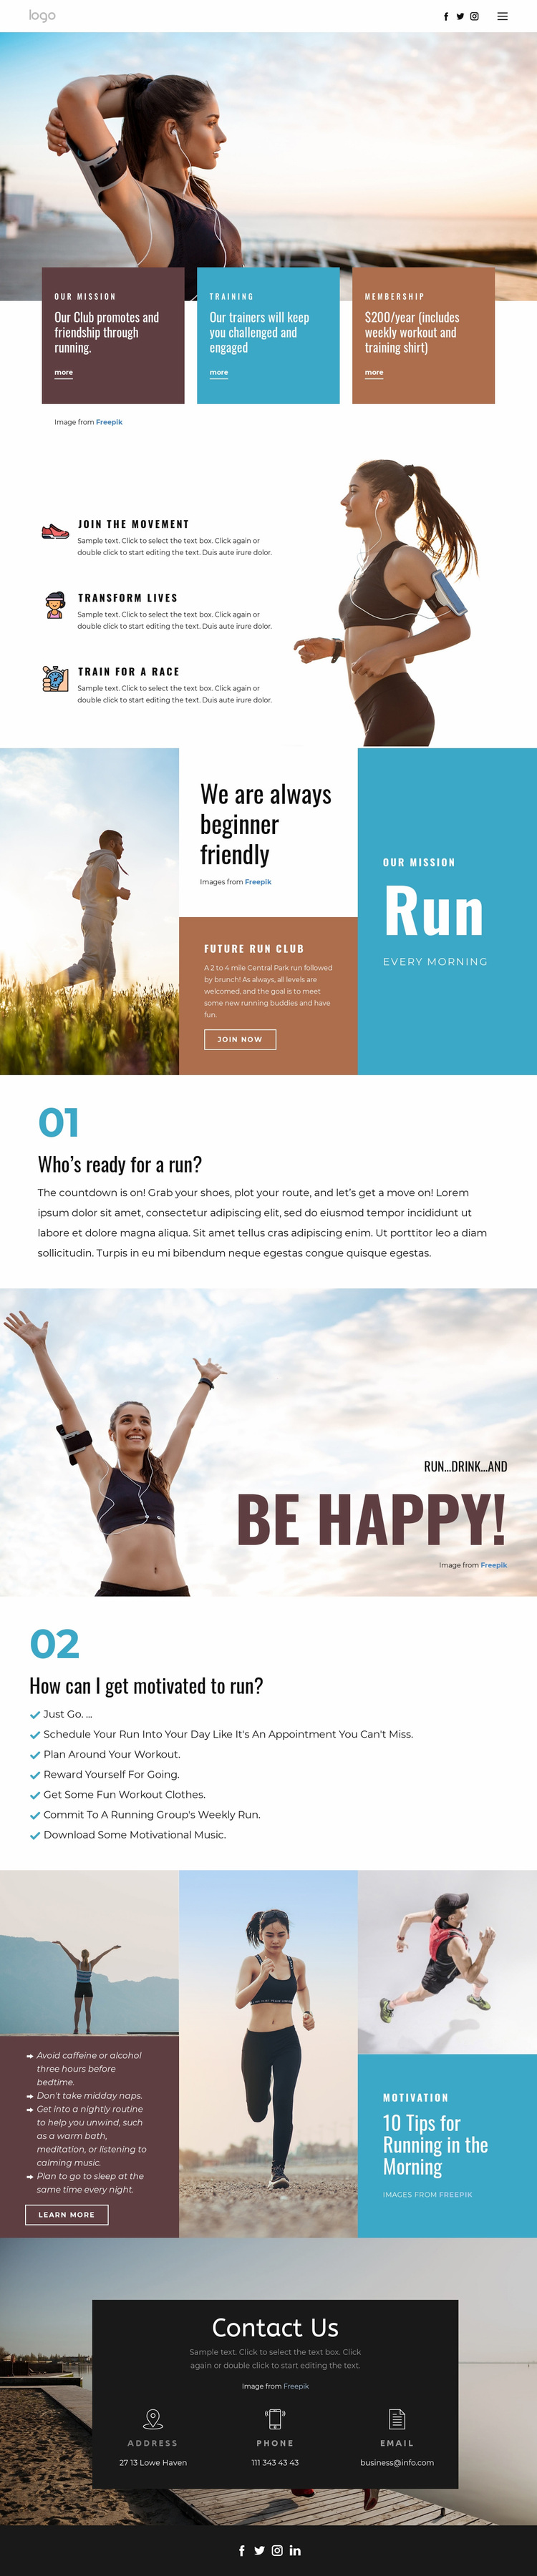 Running club for sports Web Page Designer